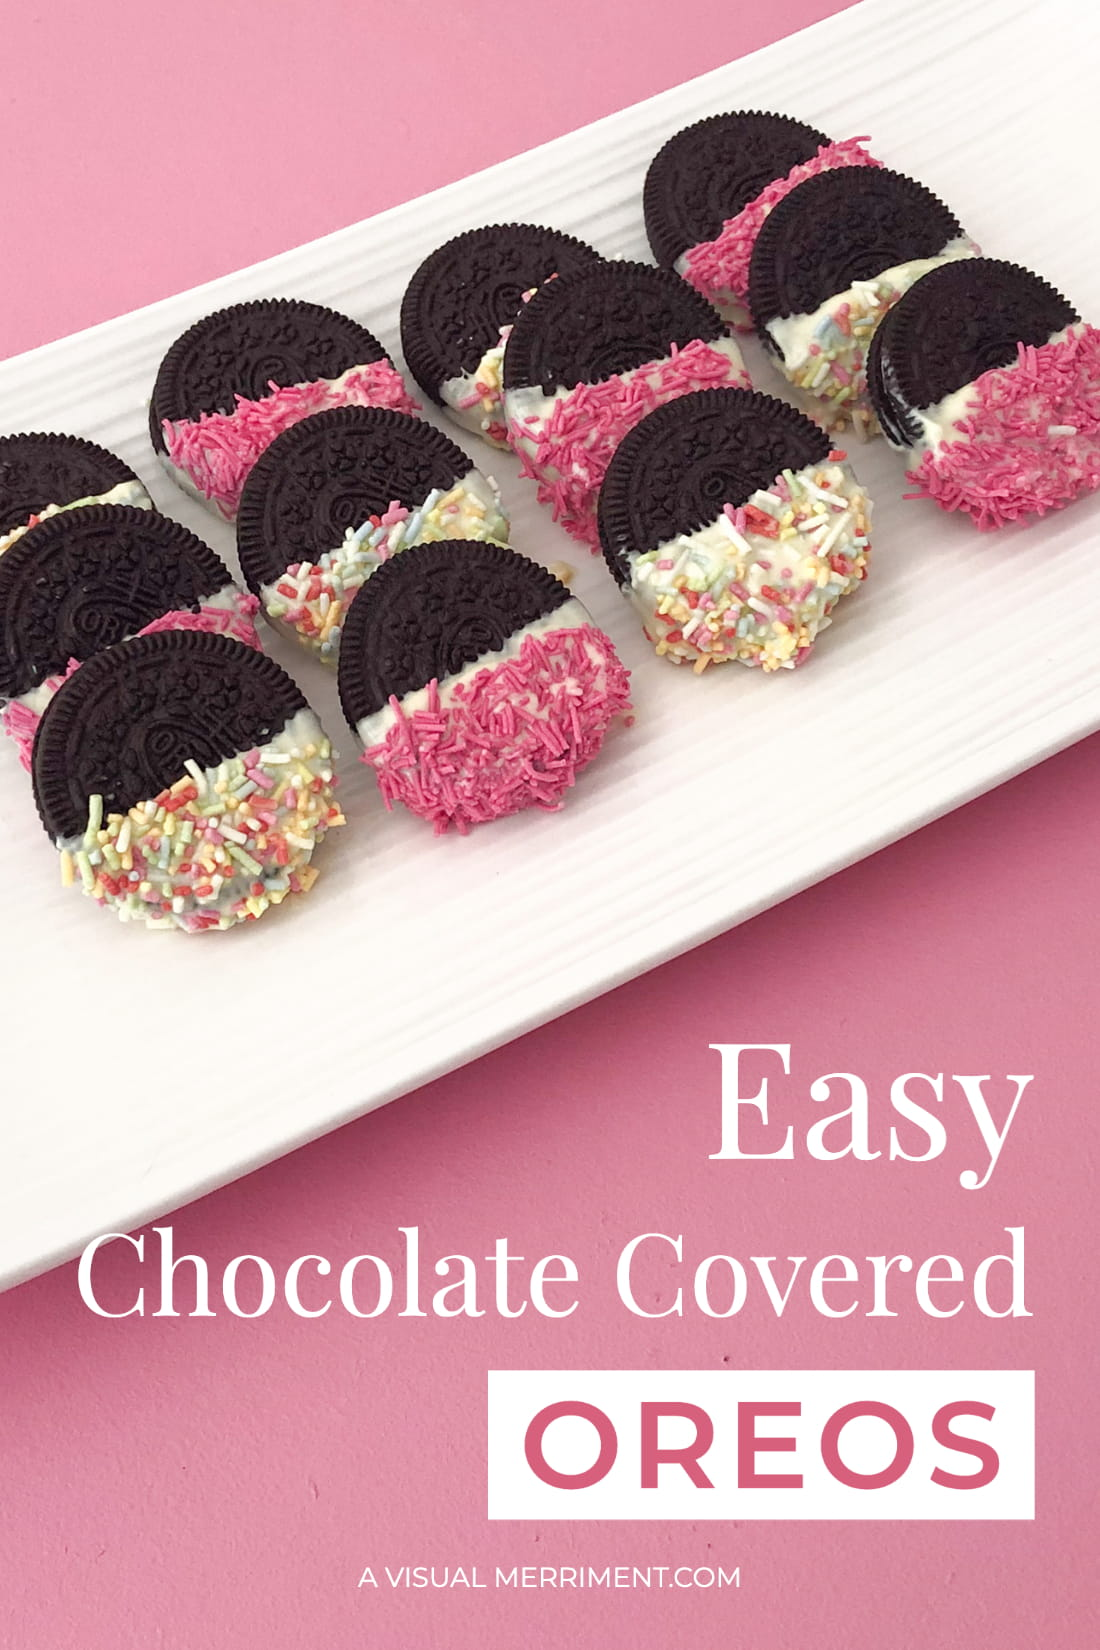 Sprinkle covered oreos on white plate against pink background